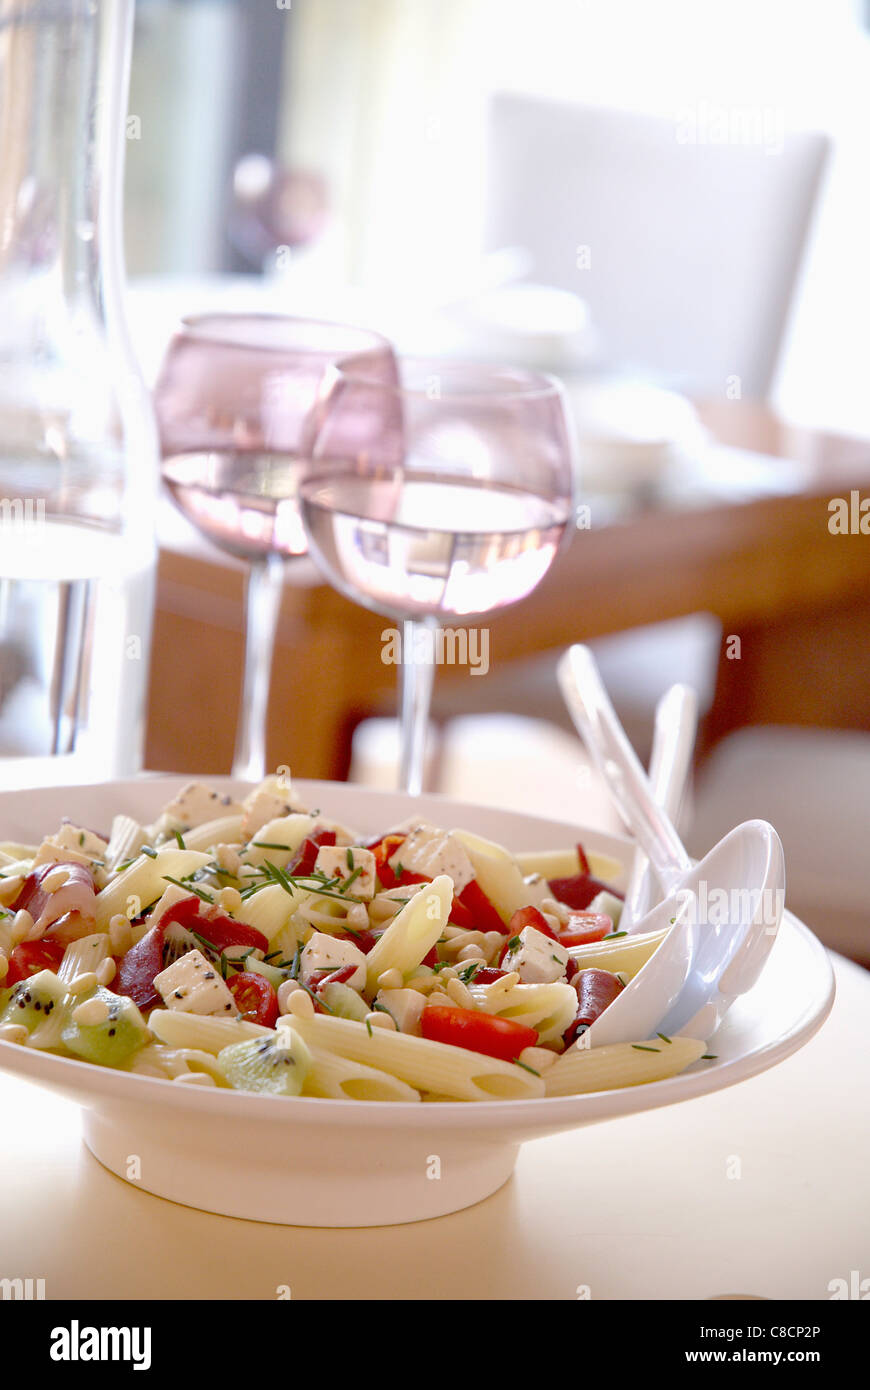 Penne,smoked Duck Brest And Vegetable Salad Stock Photo, Royalty Free ...